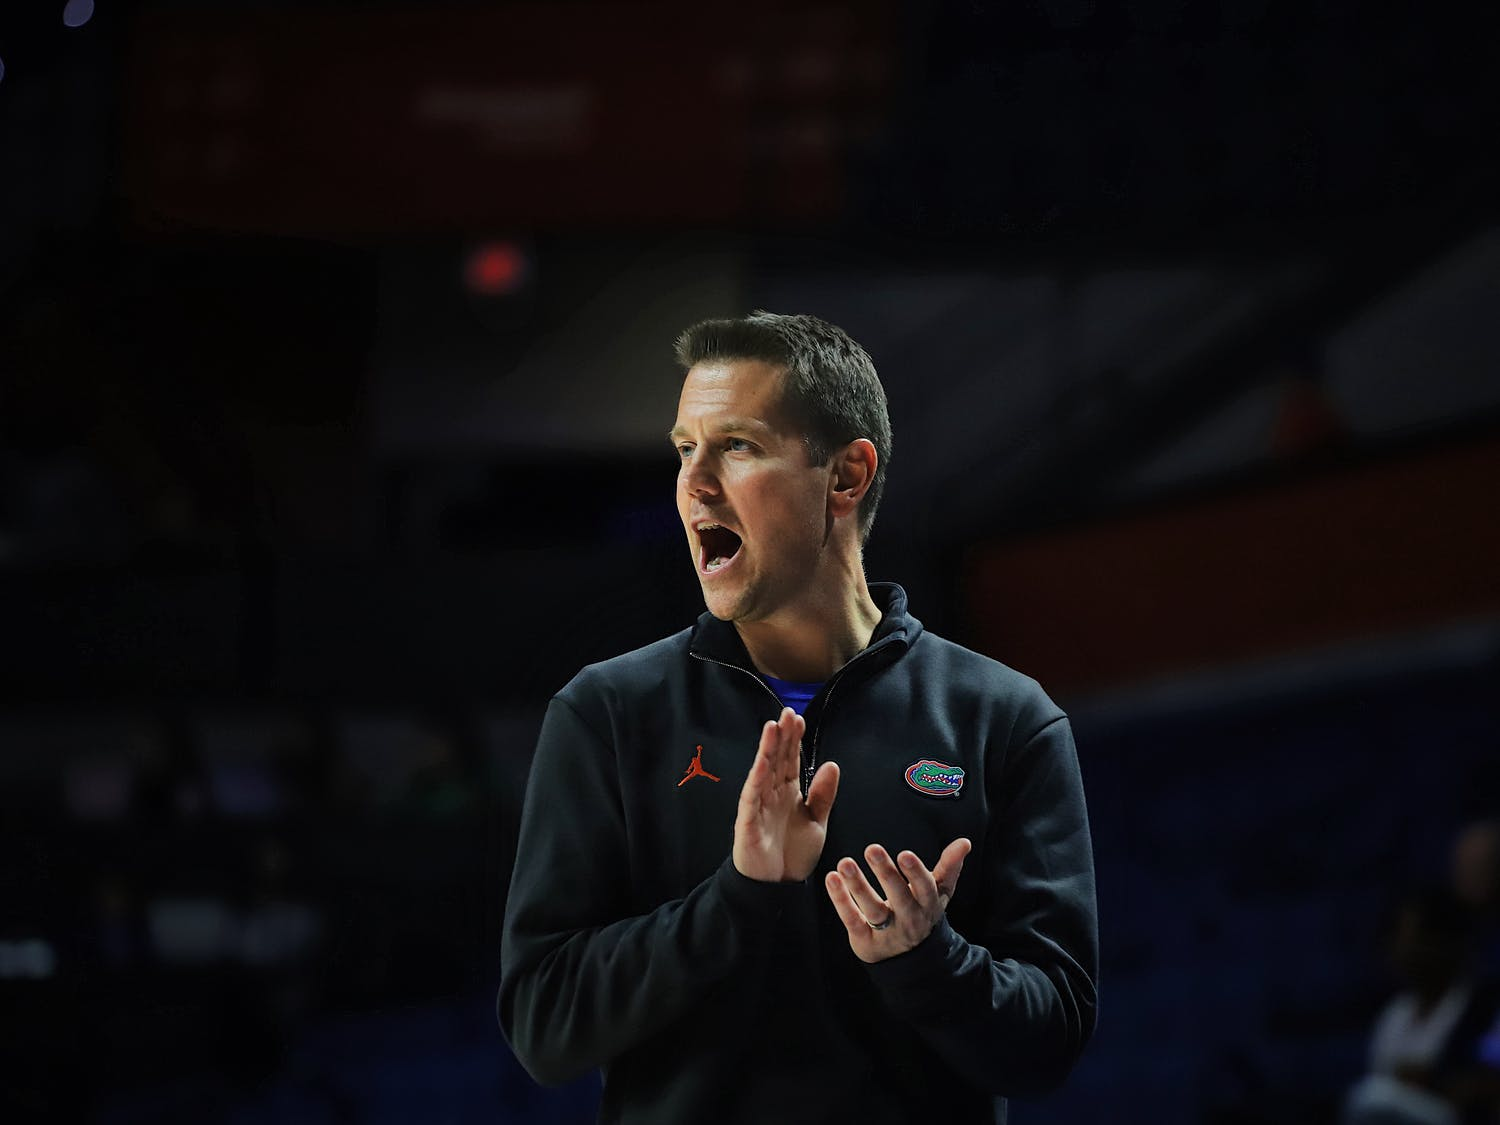 Coach Cam Newbauer on the sidelines of the Gators' game versus Presbyterian last year. With Kinslow's commitment, Newbauer has brought three transfers to Gainesville this offseason.